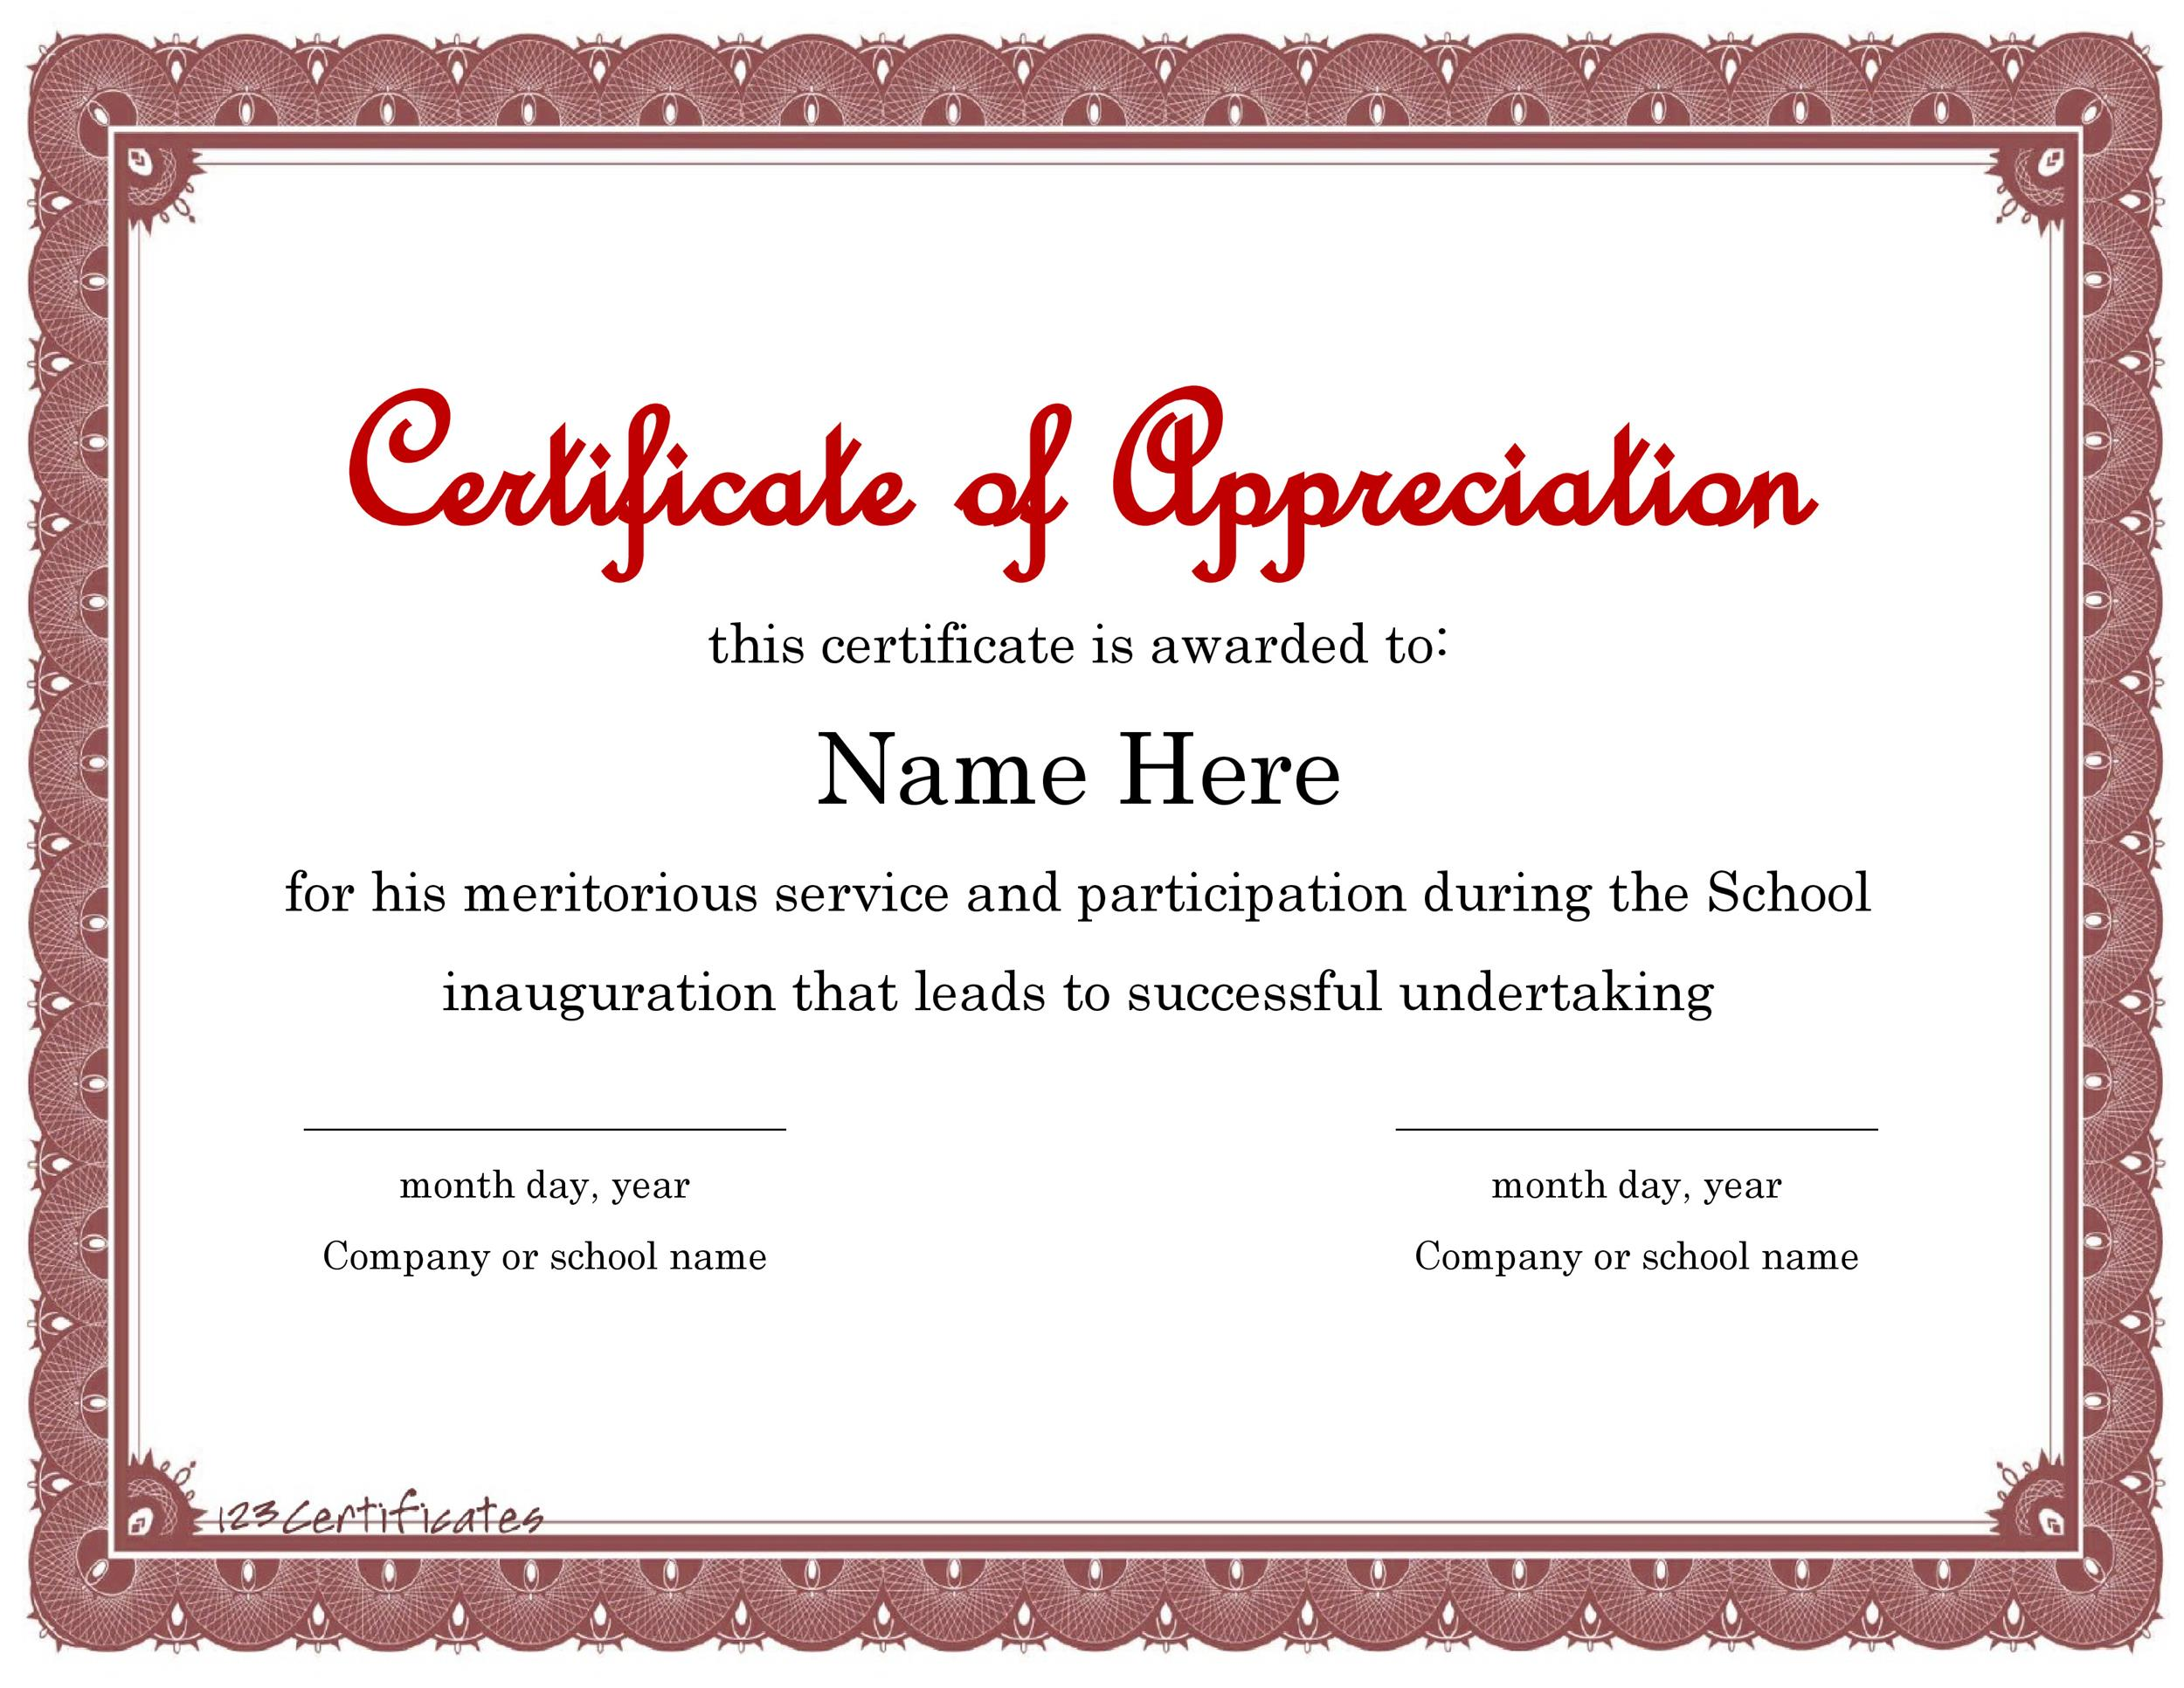 printable certificate of appreciation 01